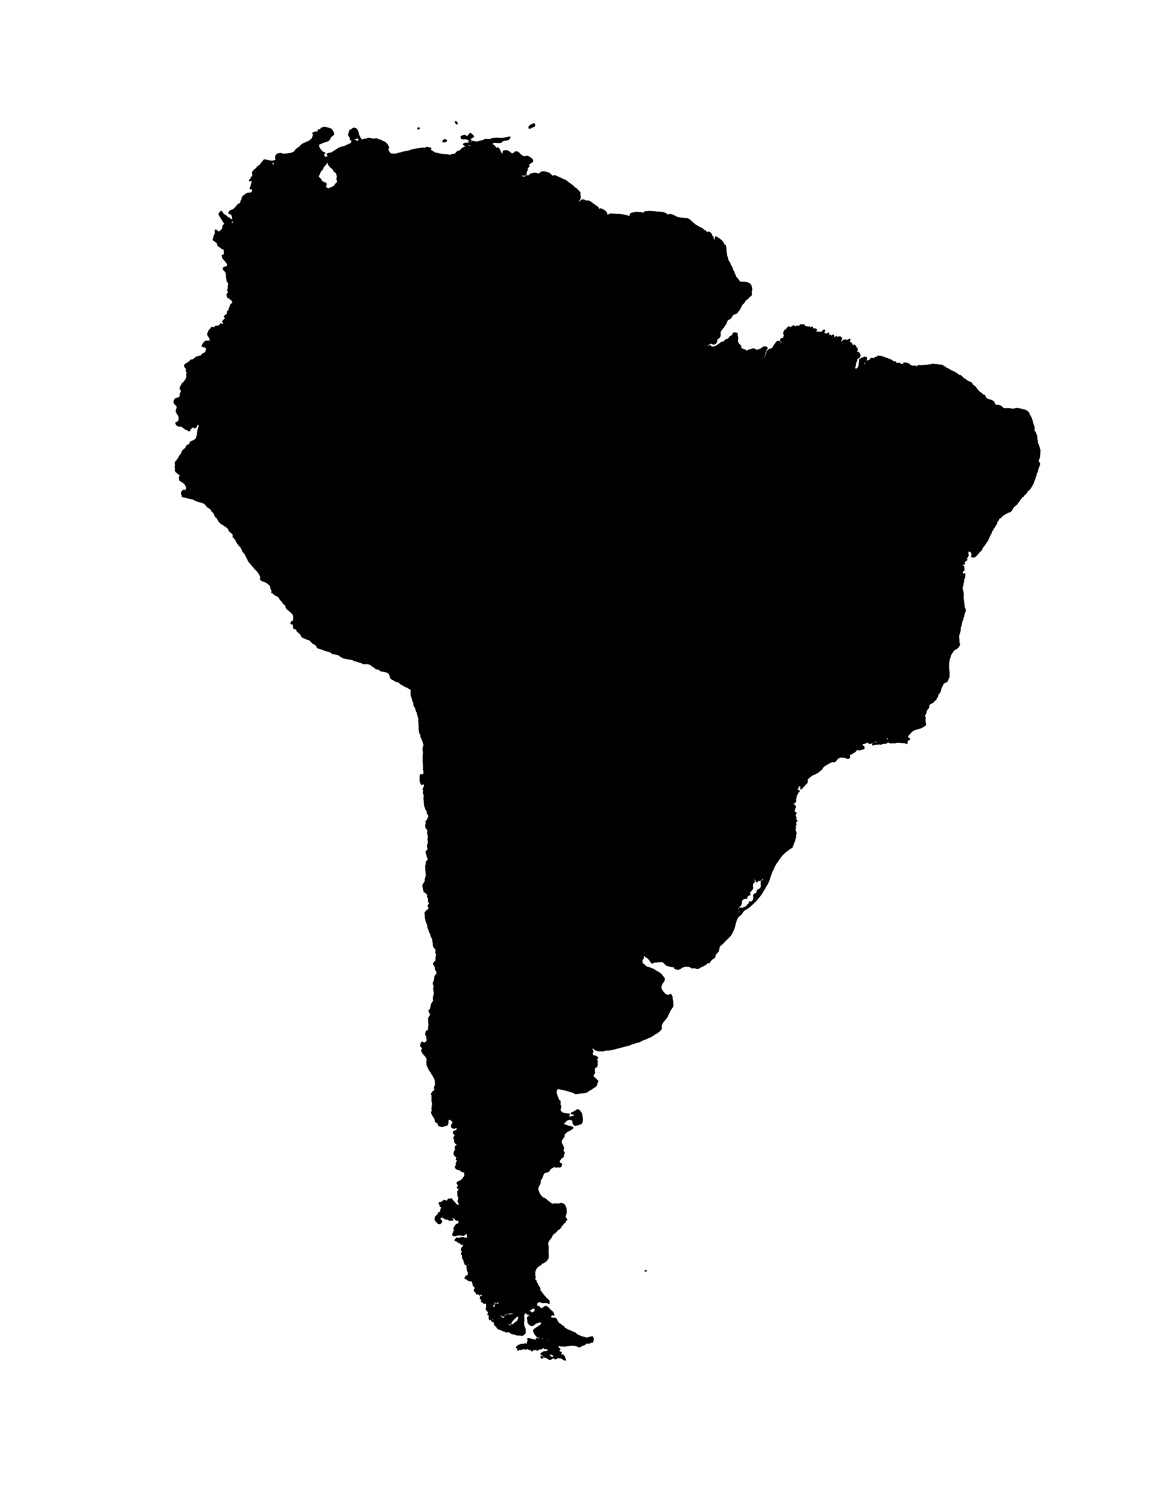 Blank Map Of South America Template - Blank map of latin america